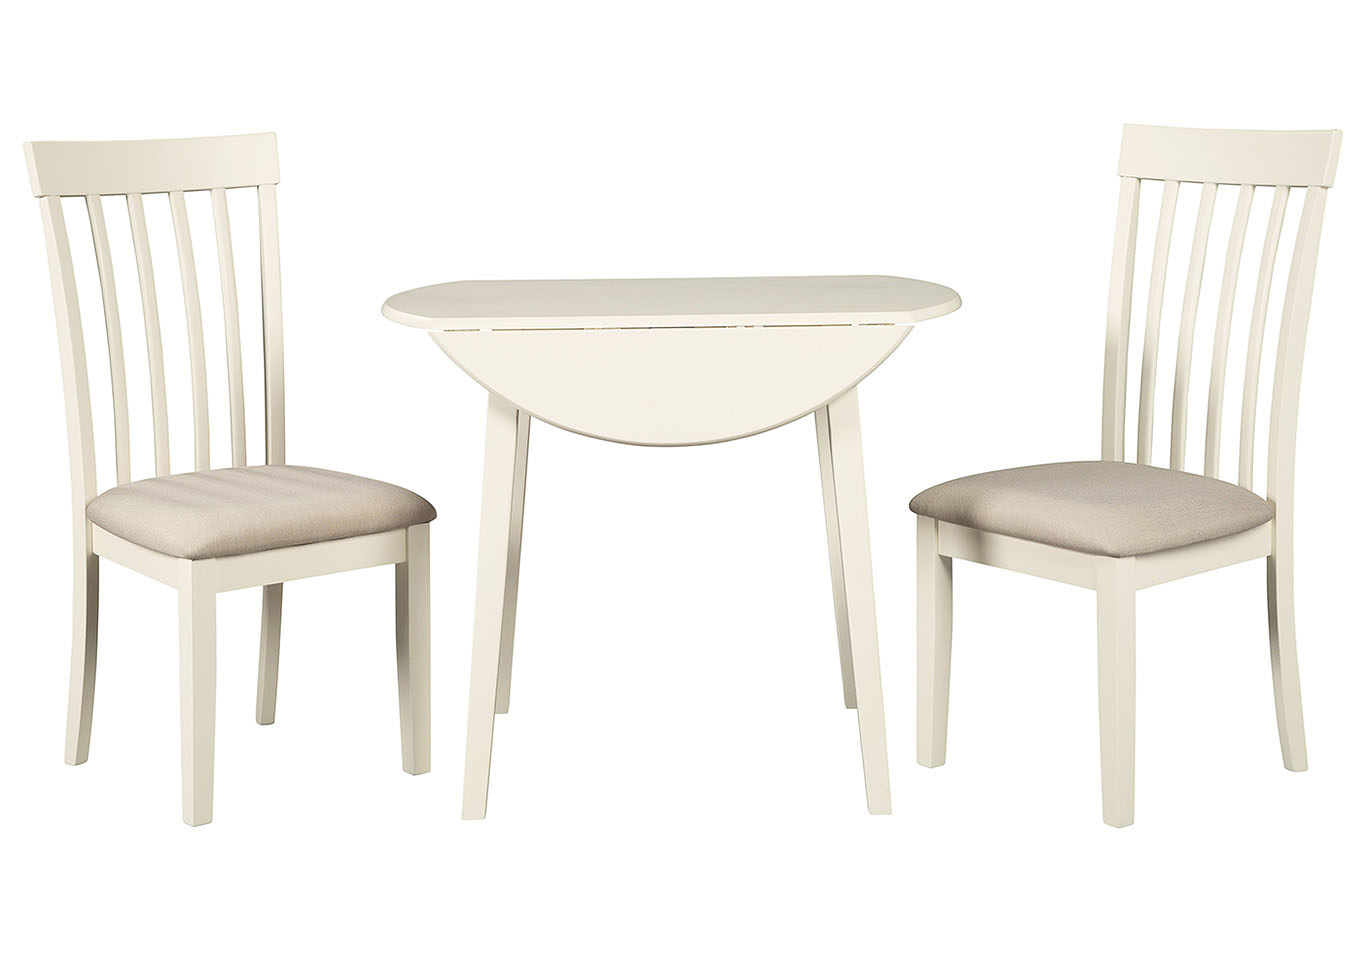 Slannery White Dining Table w/2 Side Chairs,Signature Design By Ashley